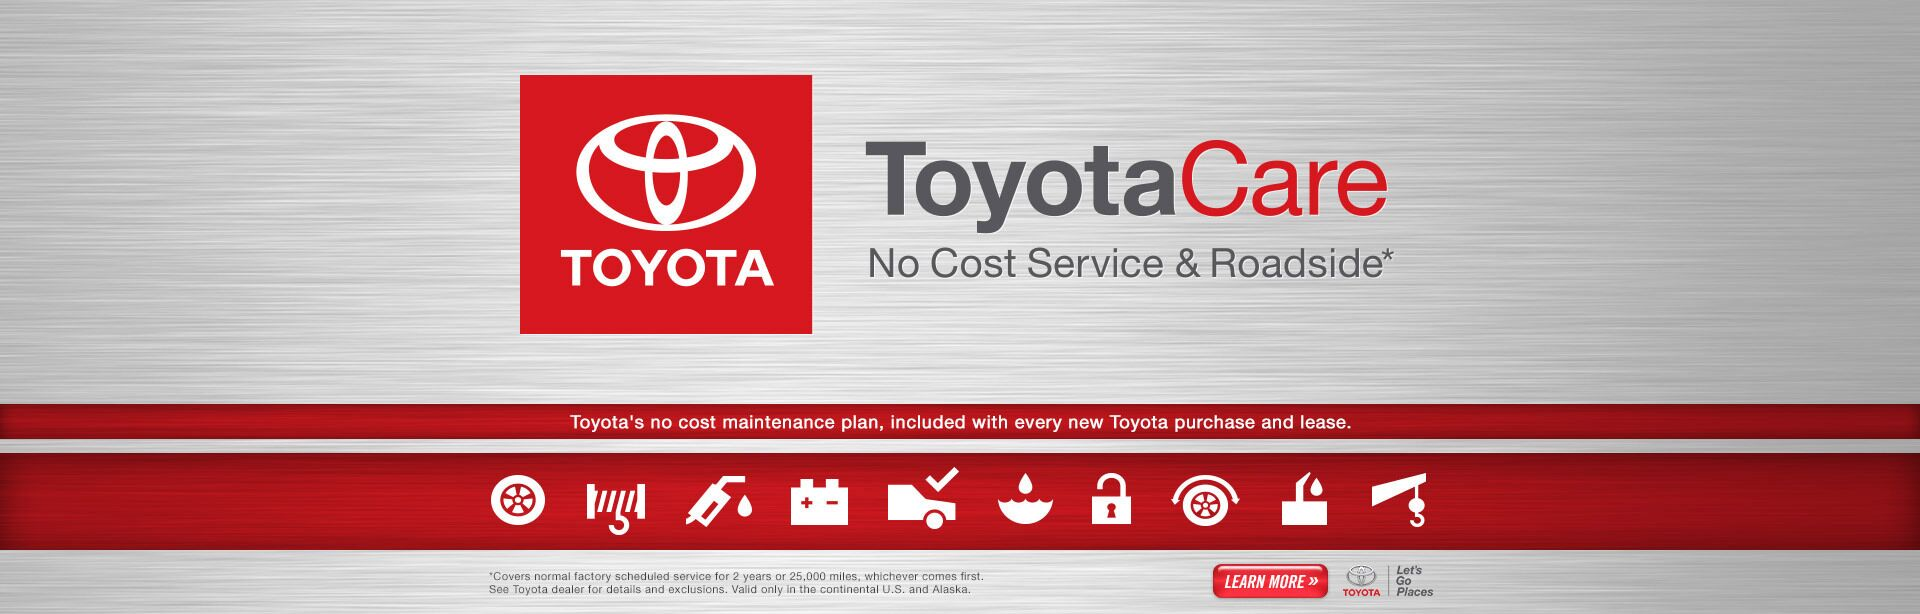 ToyotaCare Maintenance